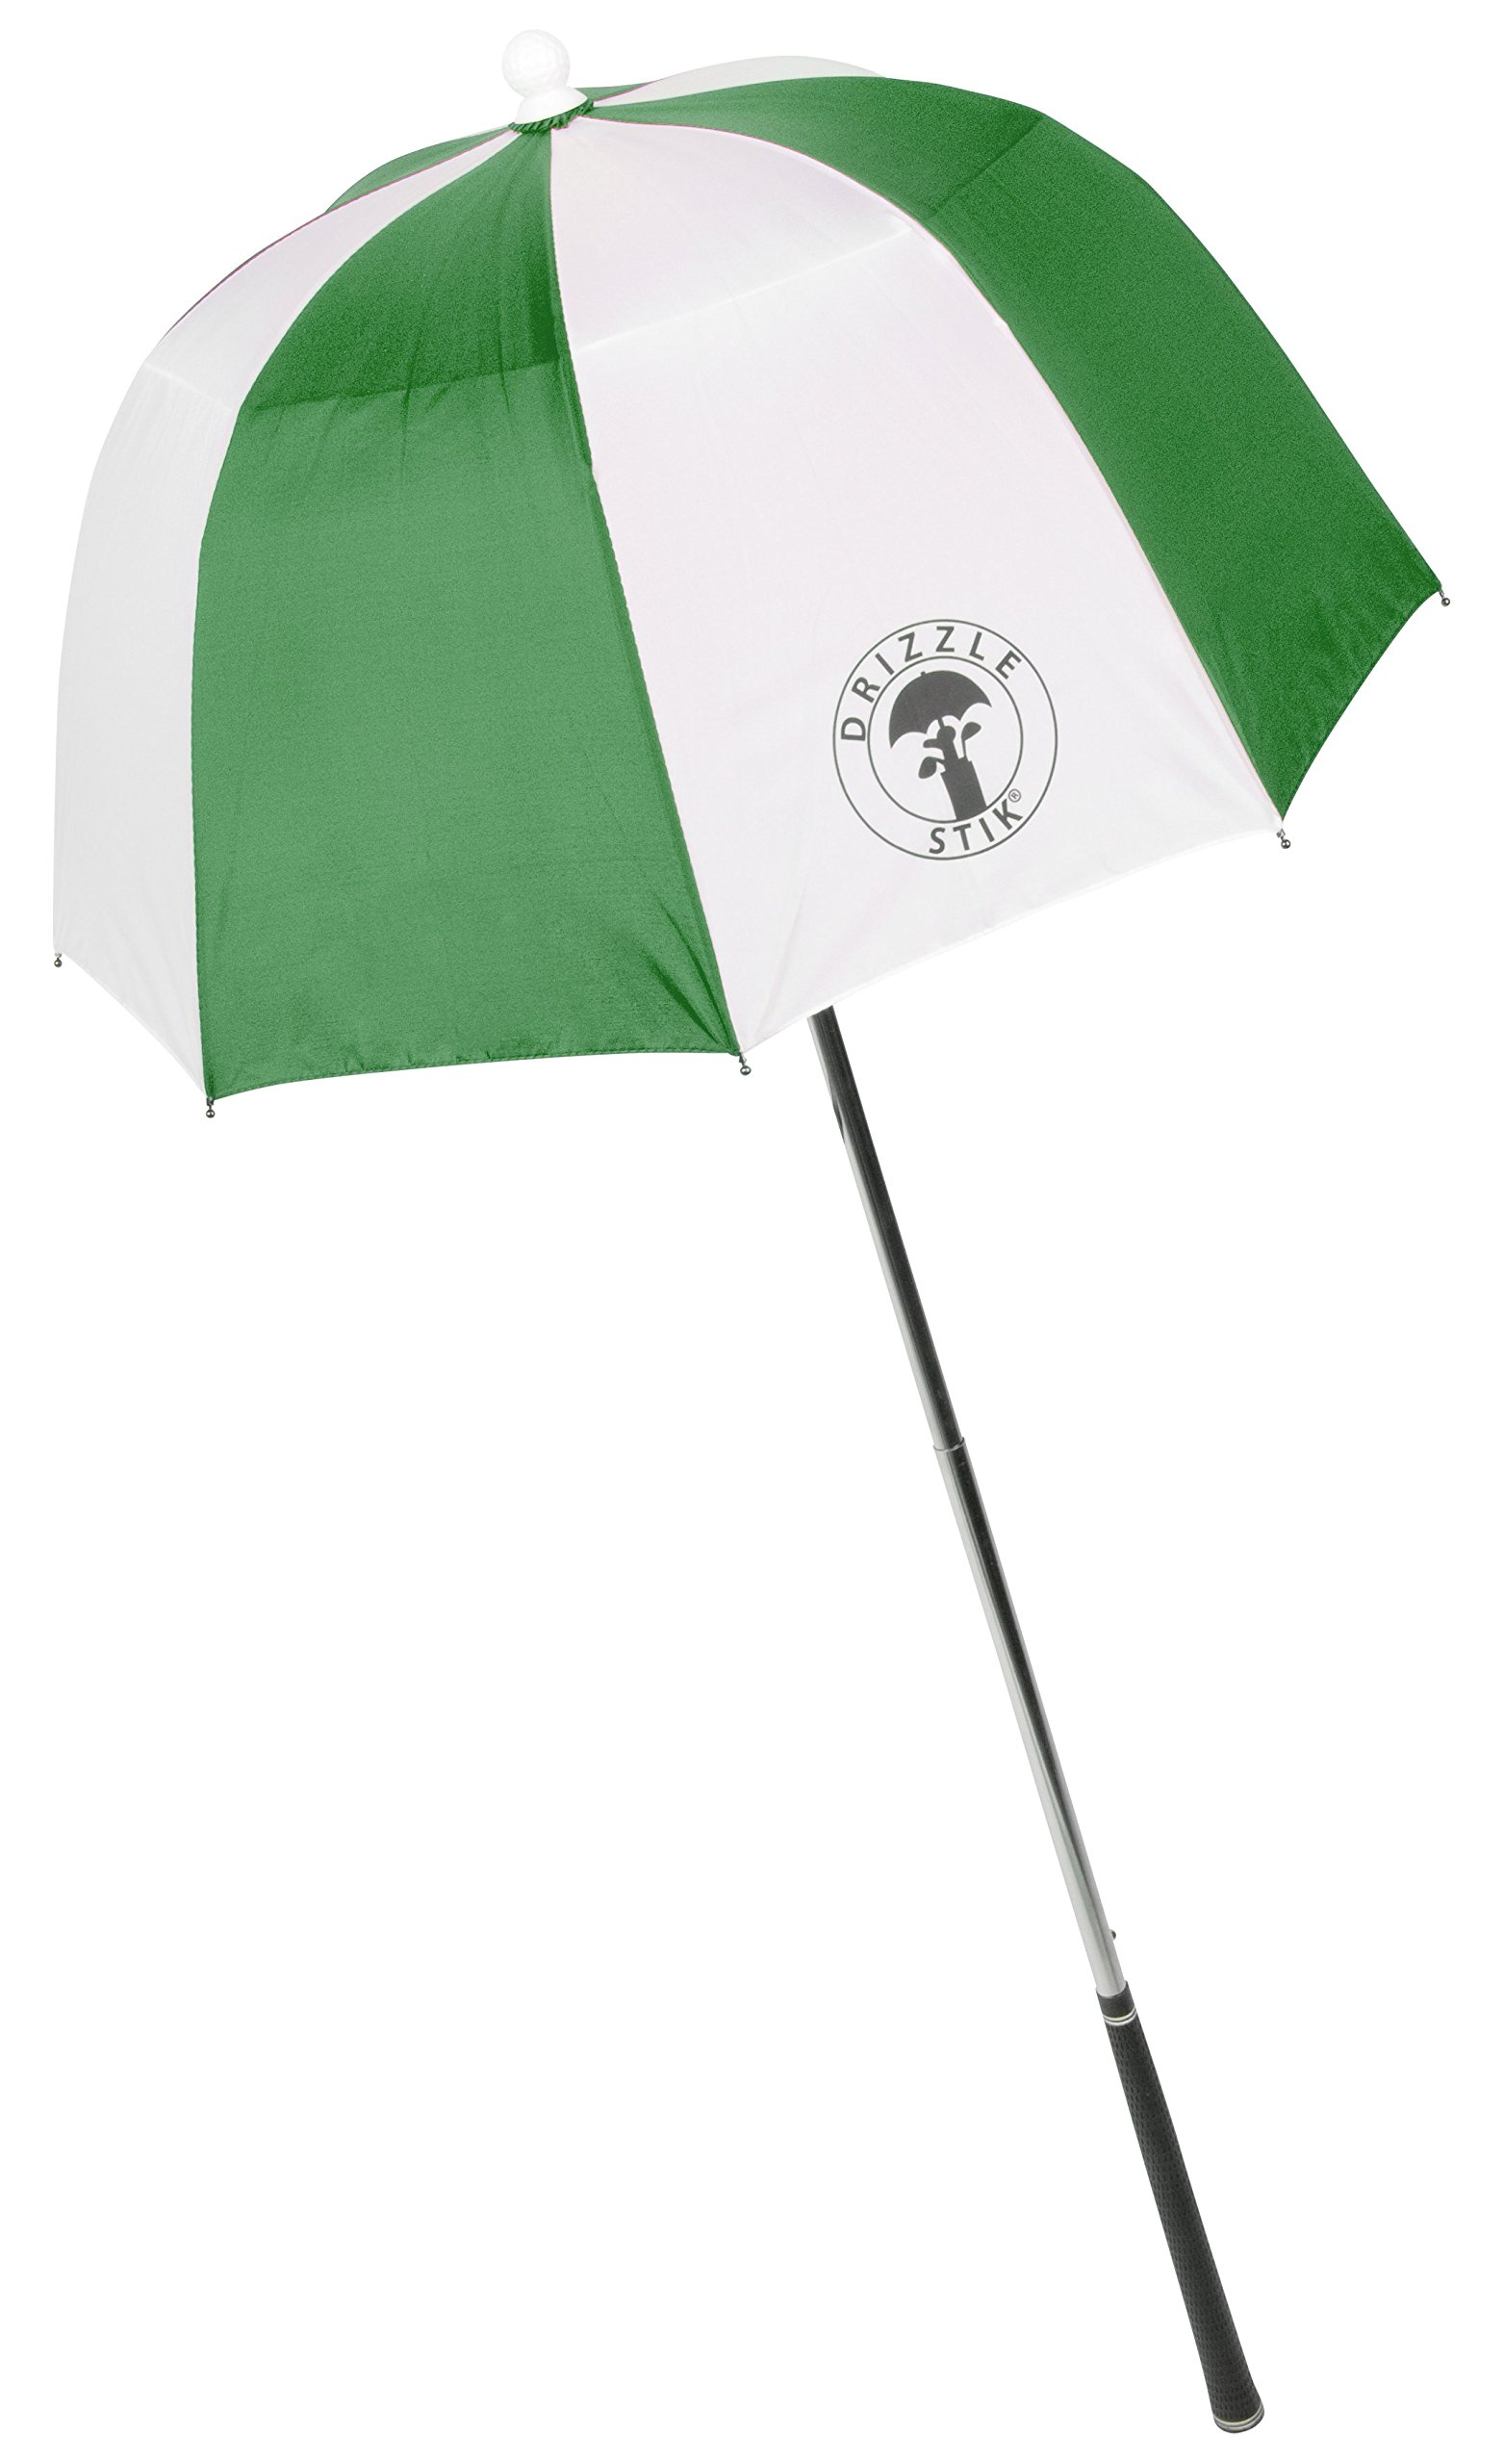 Drizzle Stik Flex- Golf Club Umbrella by Drizzle Stik